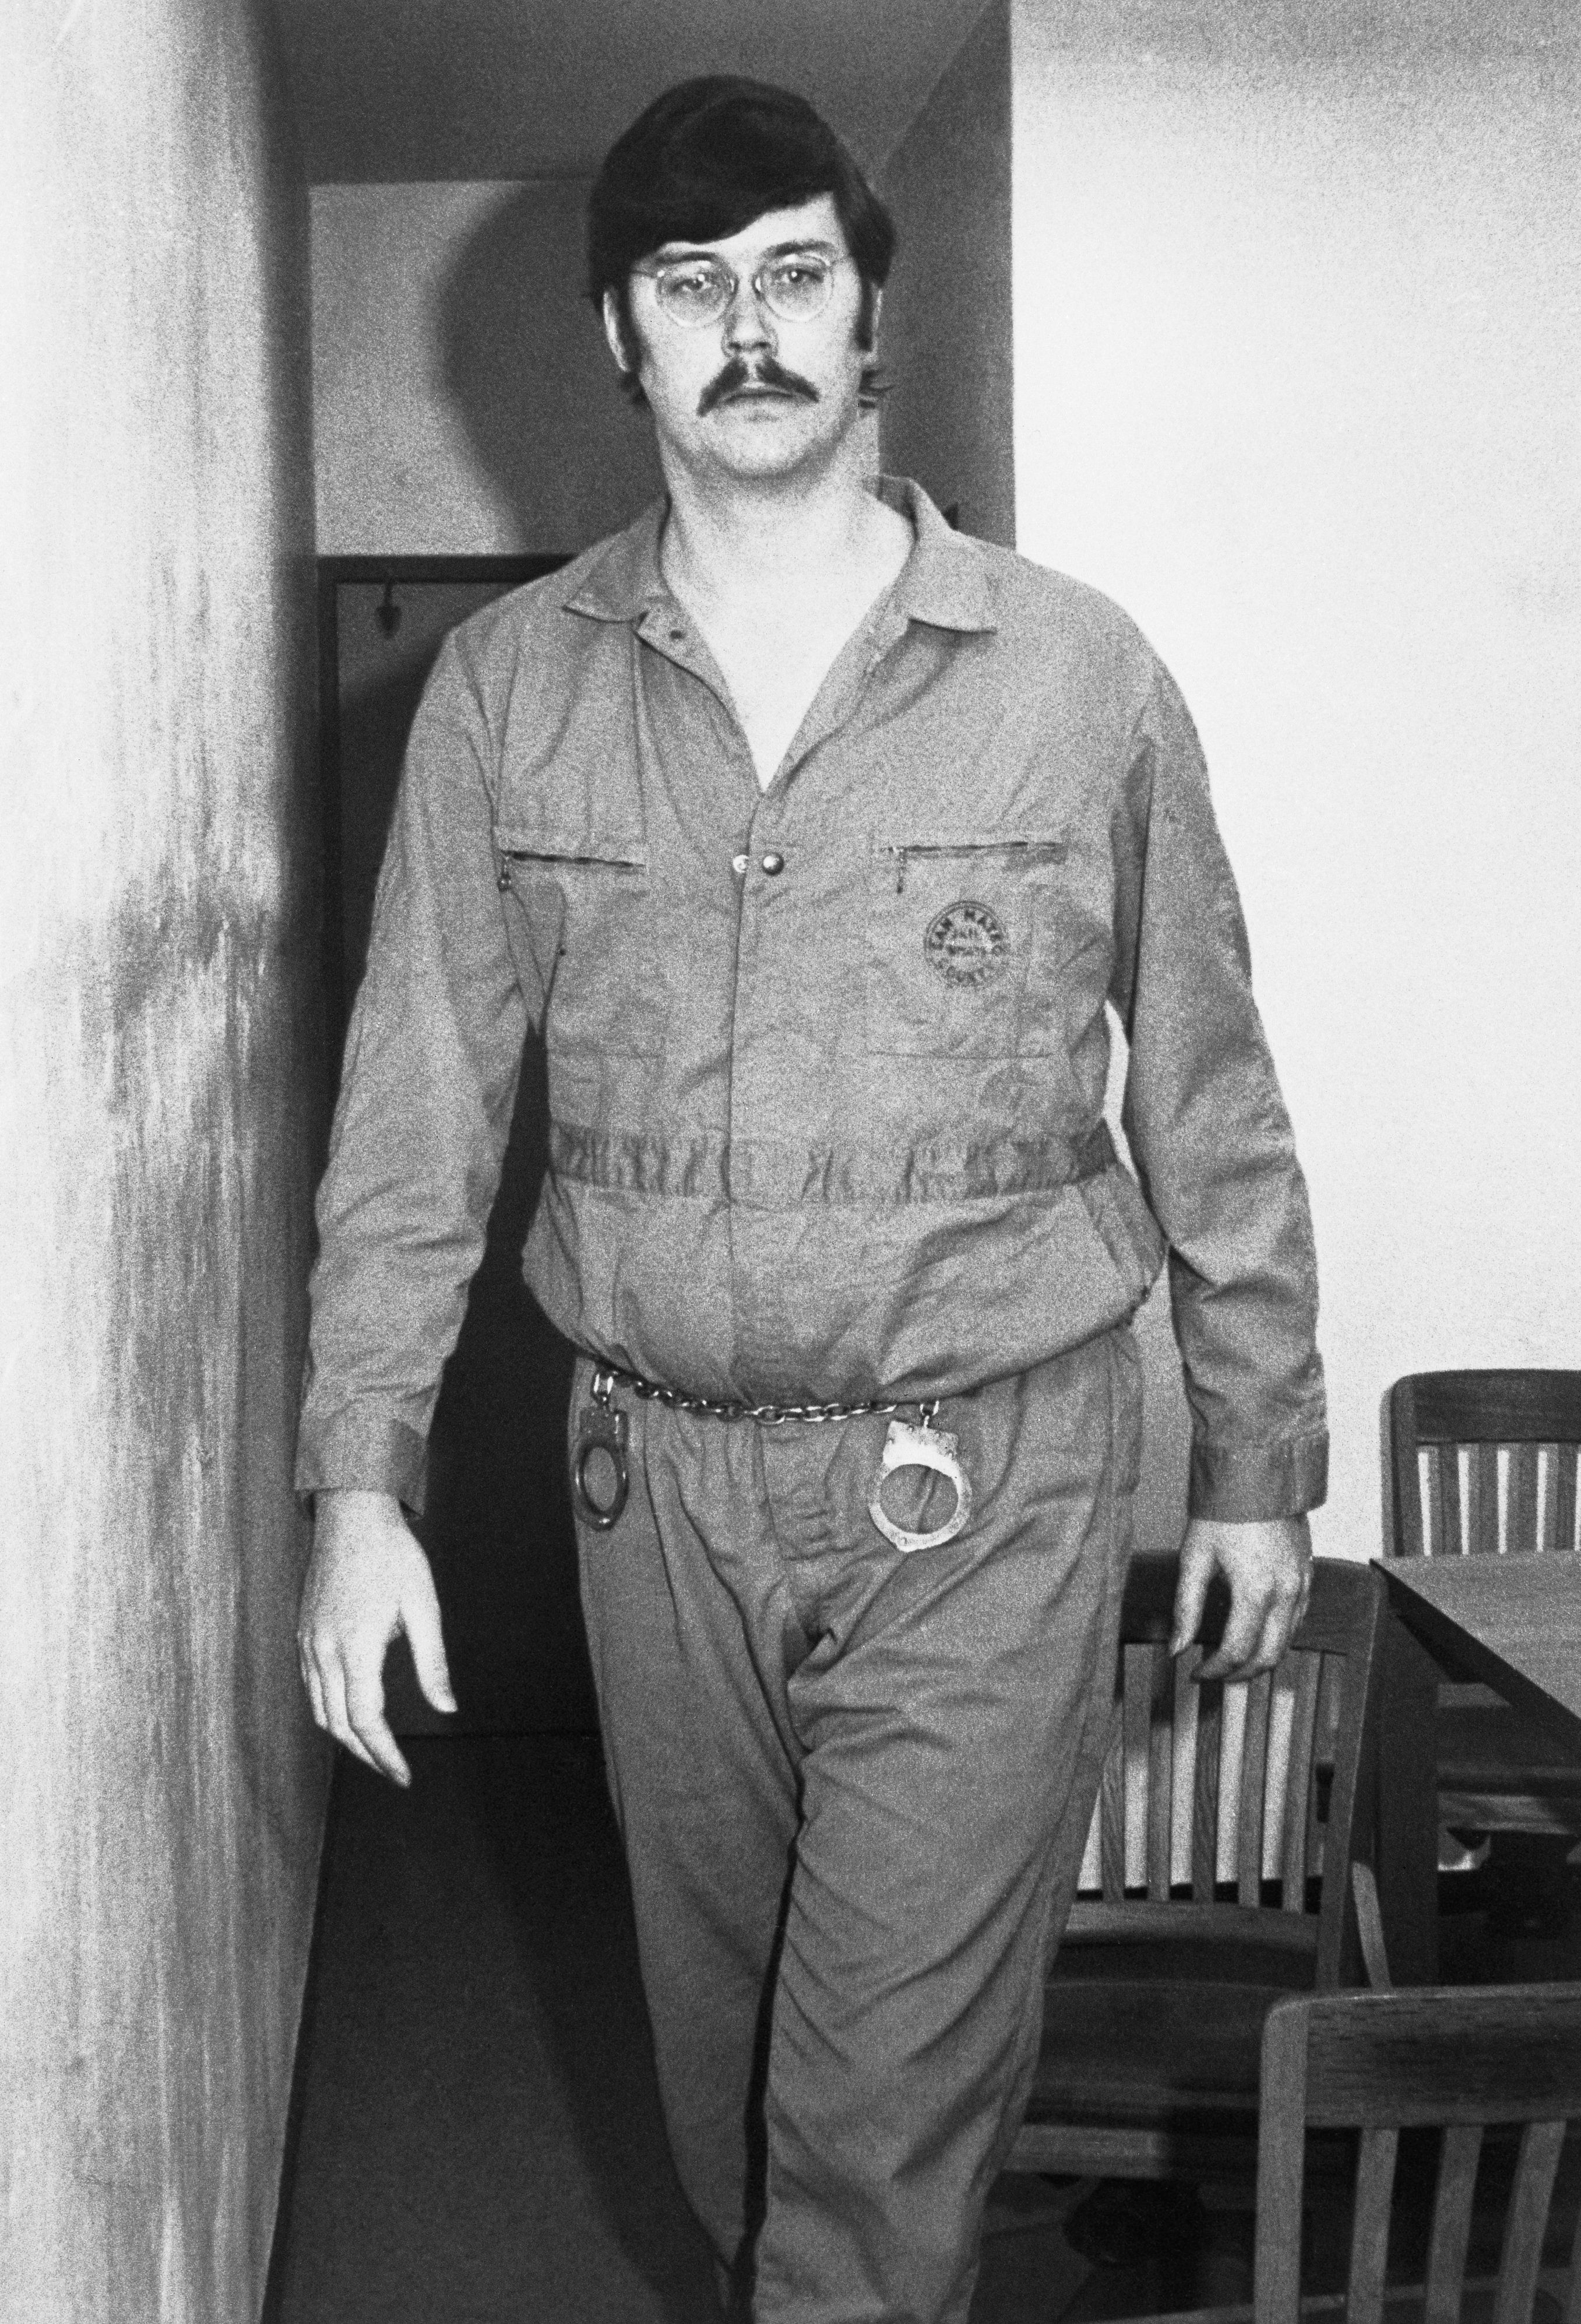 Who Is Edmund Kemper, The 'Co-Ed Killer,' From 'Mindhunter' And Where Is He Now?